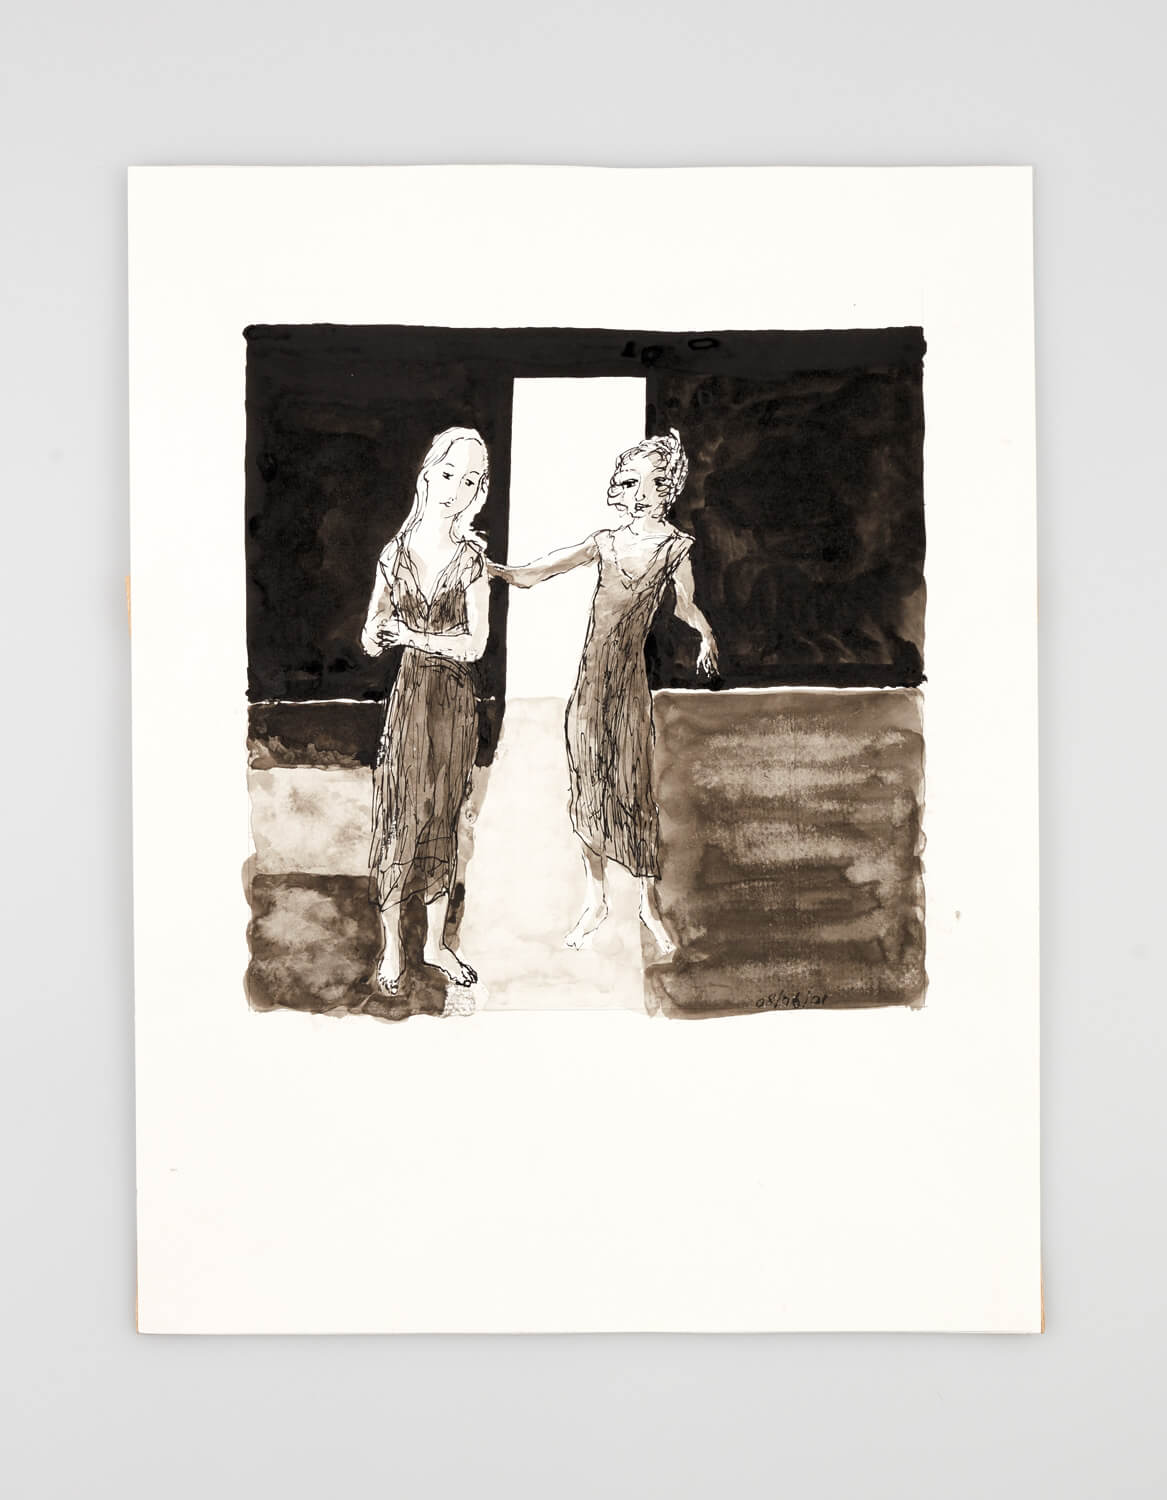 JB002 - Two Women Dressing - 2001 - 50 x 35 cm - Indian ink and wash on paper